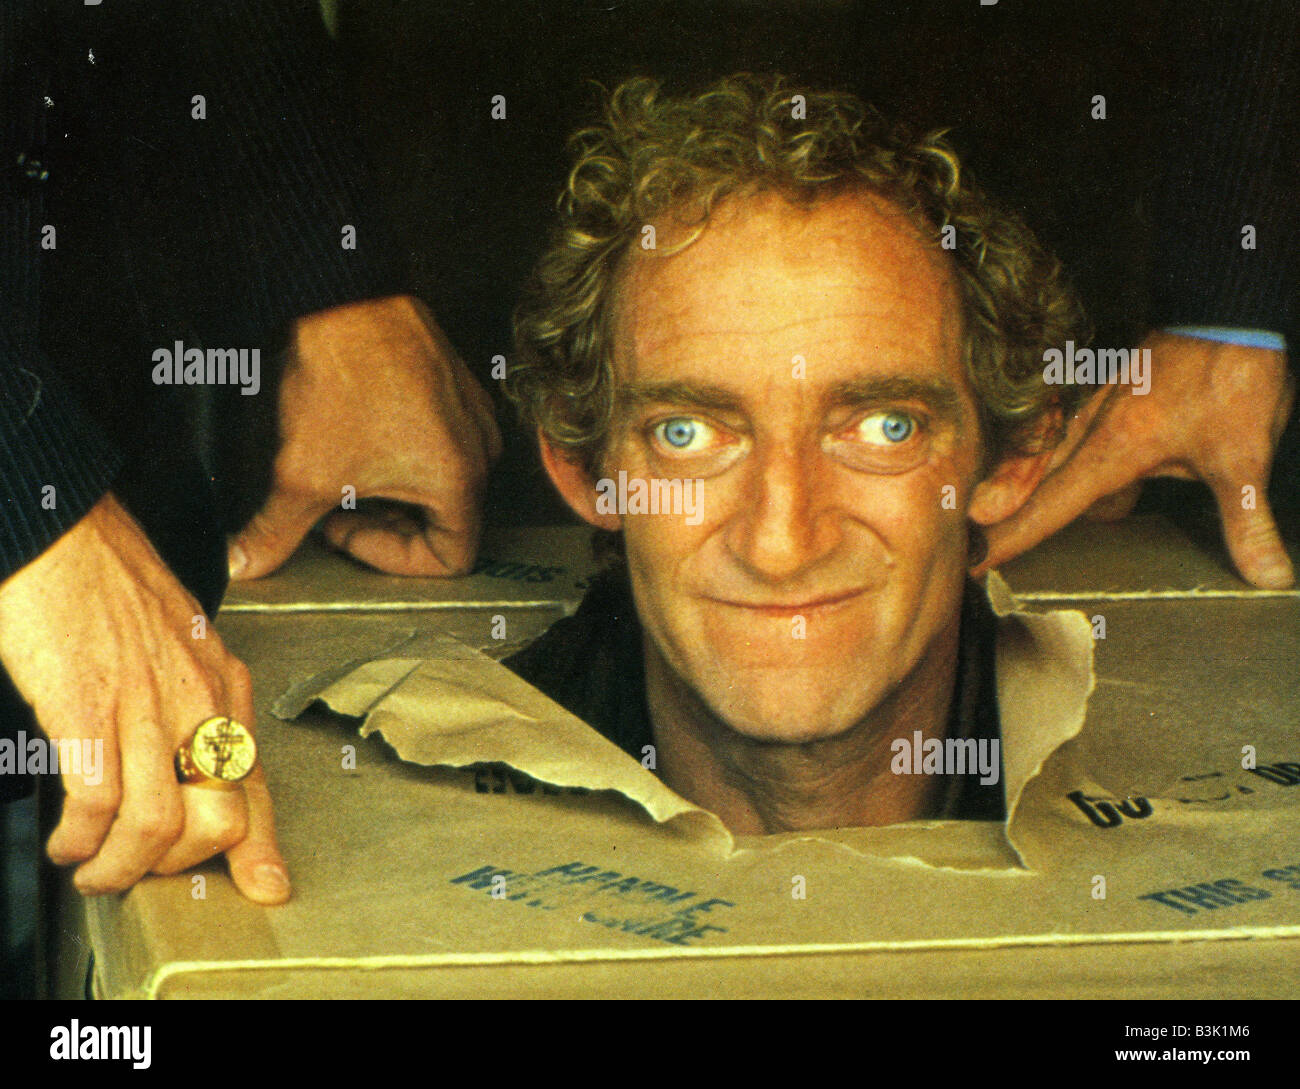 IN GOD WE TRUST 1980 Universal film with Marty Feldman - Stock Image